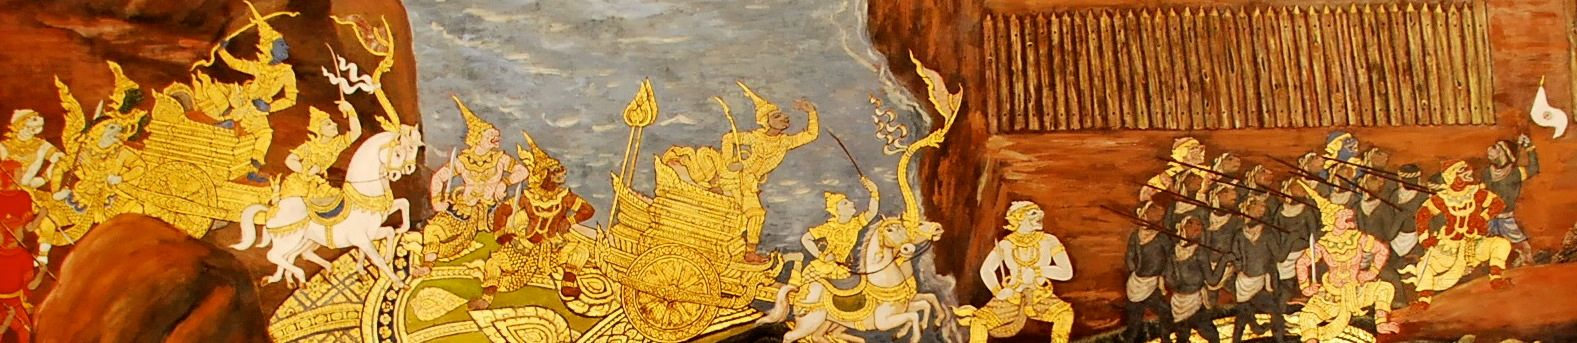 Temple Mural at Grand Palace, Bangkok, Thailand